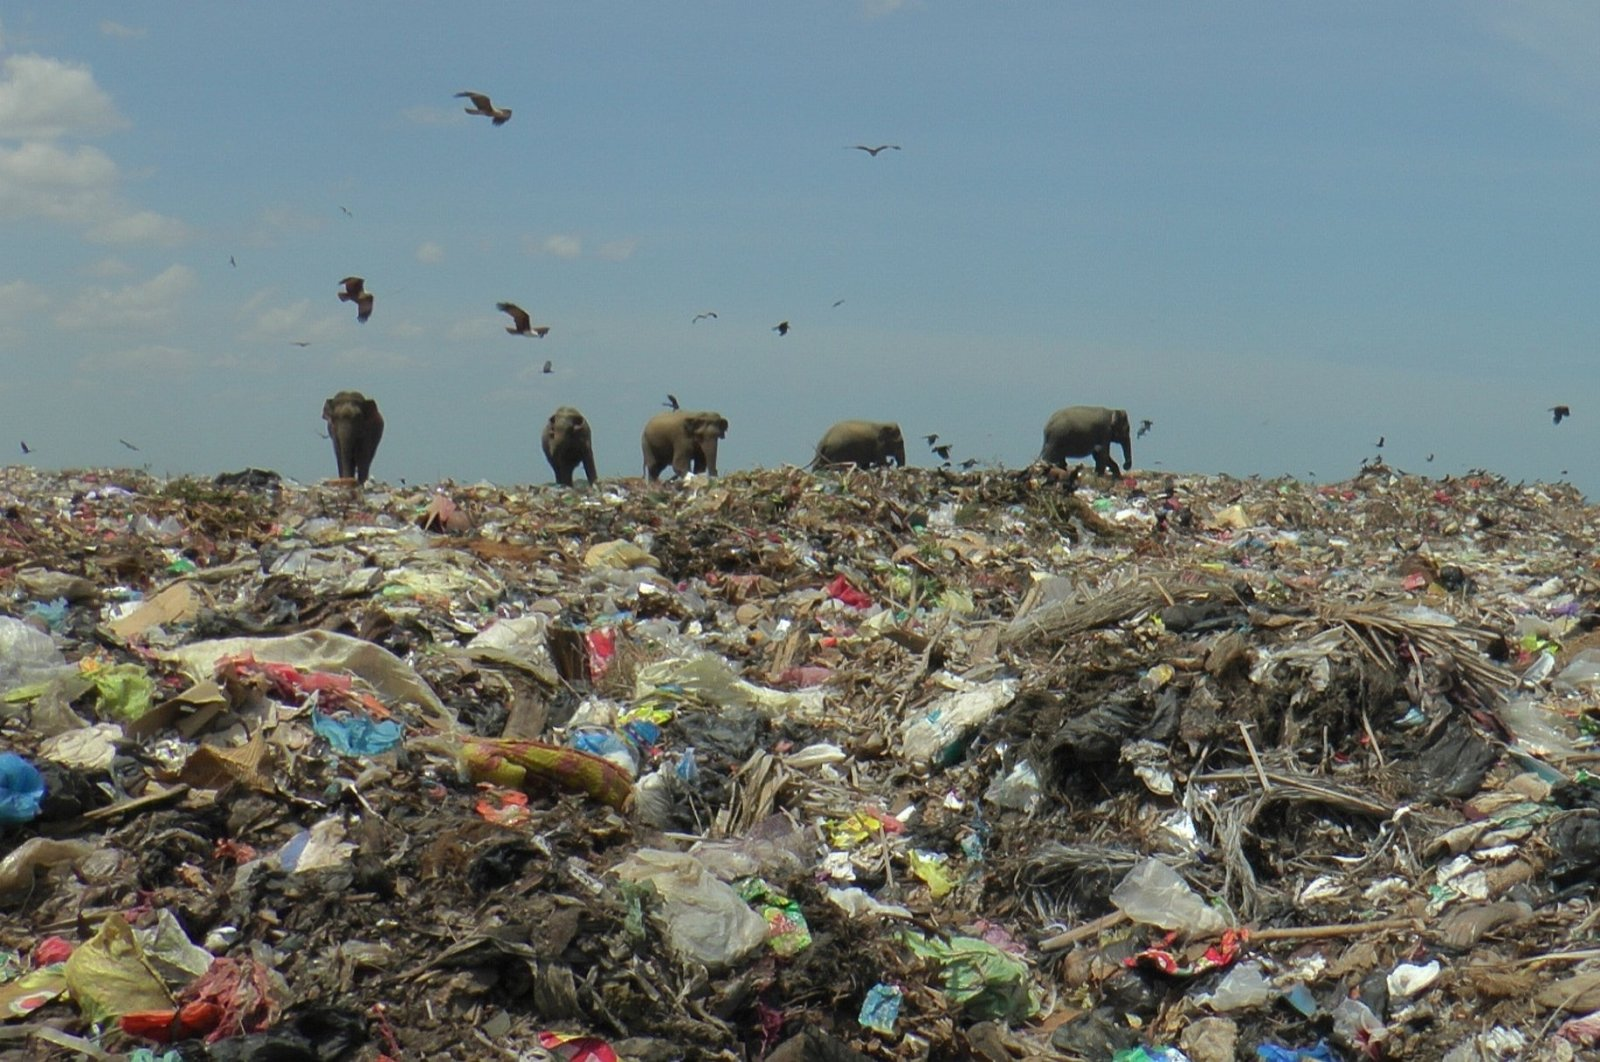 Wild elephants are seen at a garbage landfill near the eastern town of Ampara in Sri Lanka, Oct. 4, 2020. (Reuters Photo)